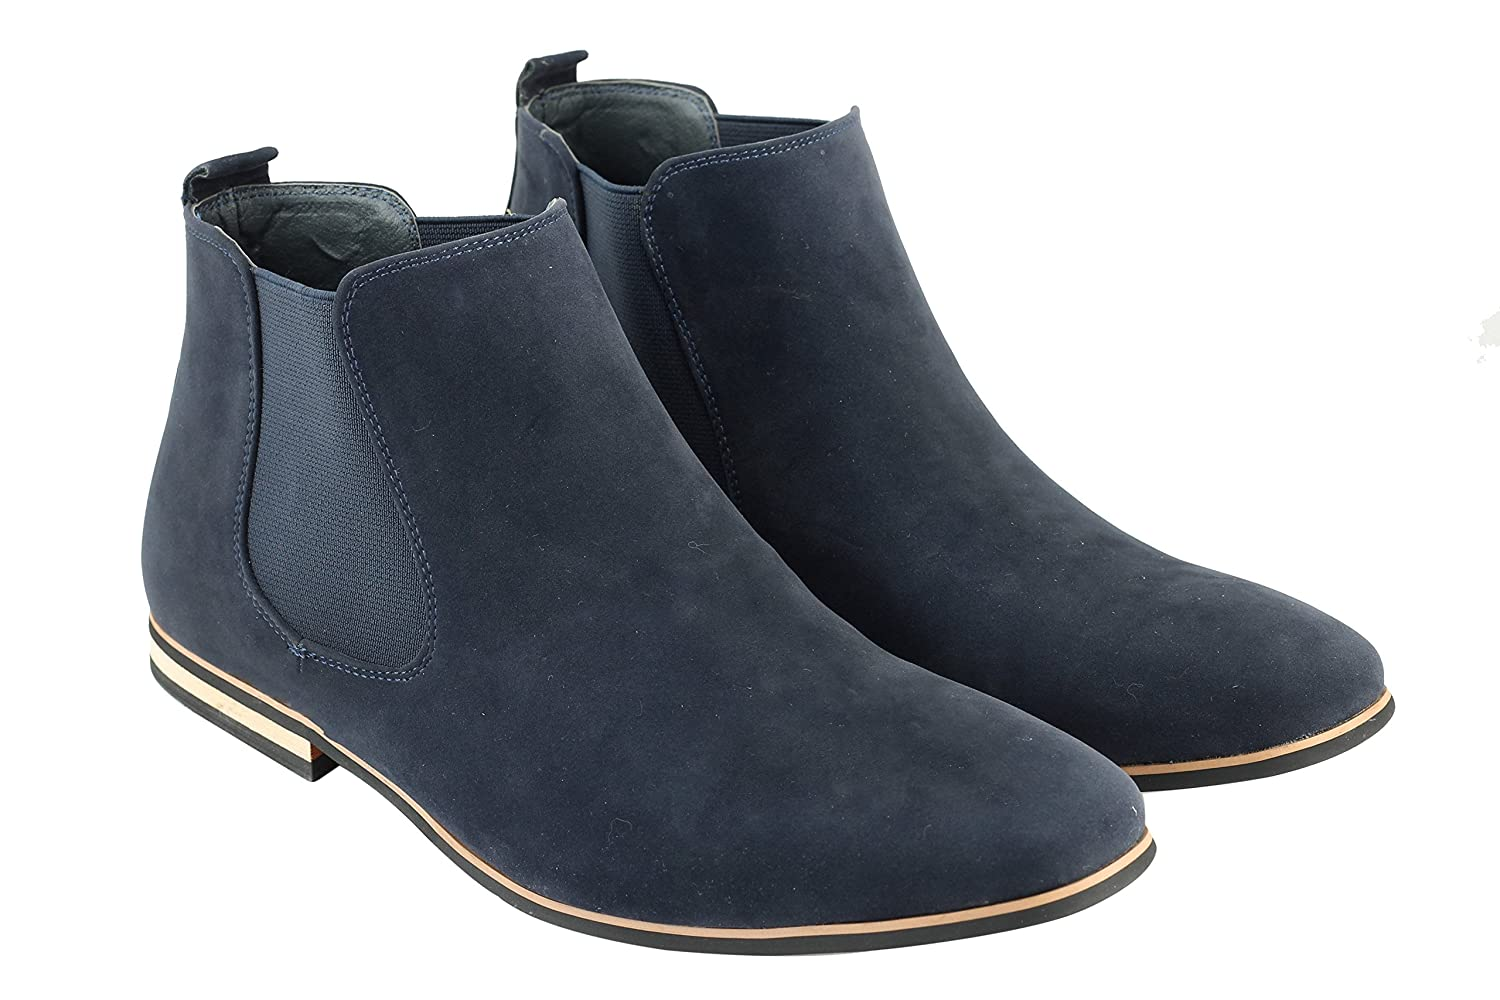 Mens Suede Chelsea Boots Italian Style Smart Casual Desert Dealer Ankle  Shoes: Amazon.co.uk: Shoes & Bags